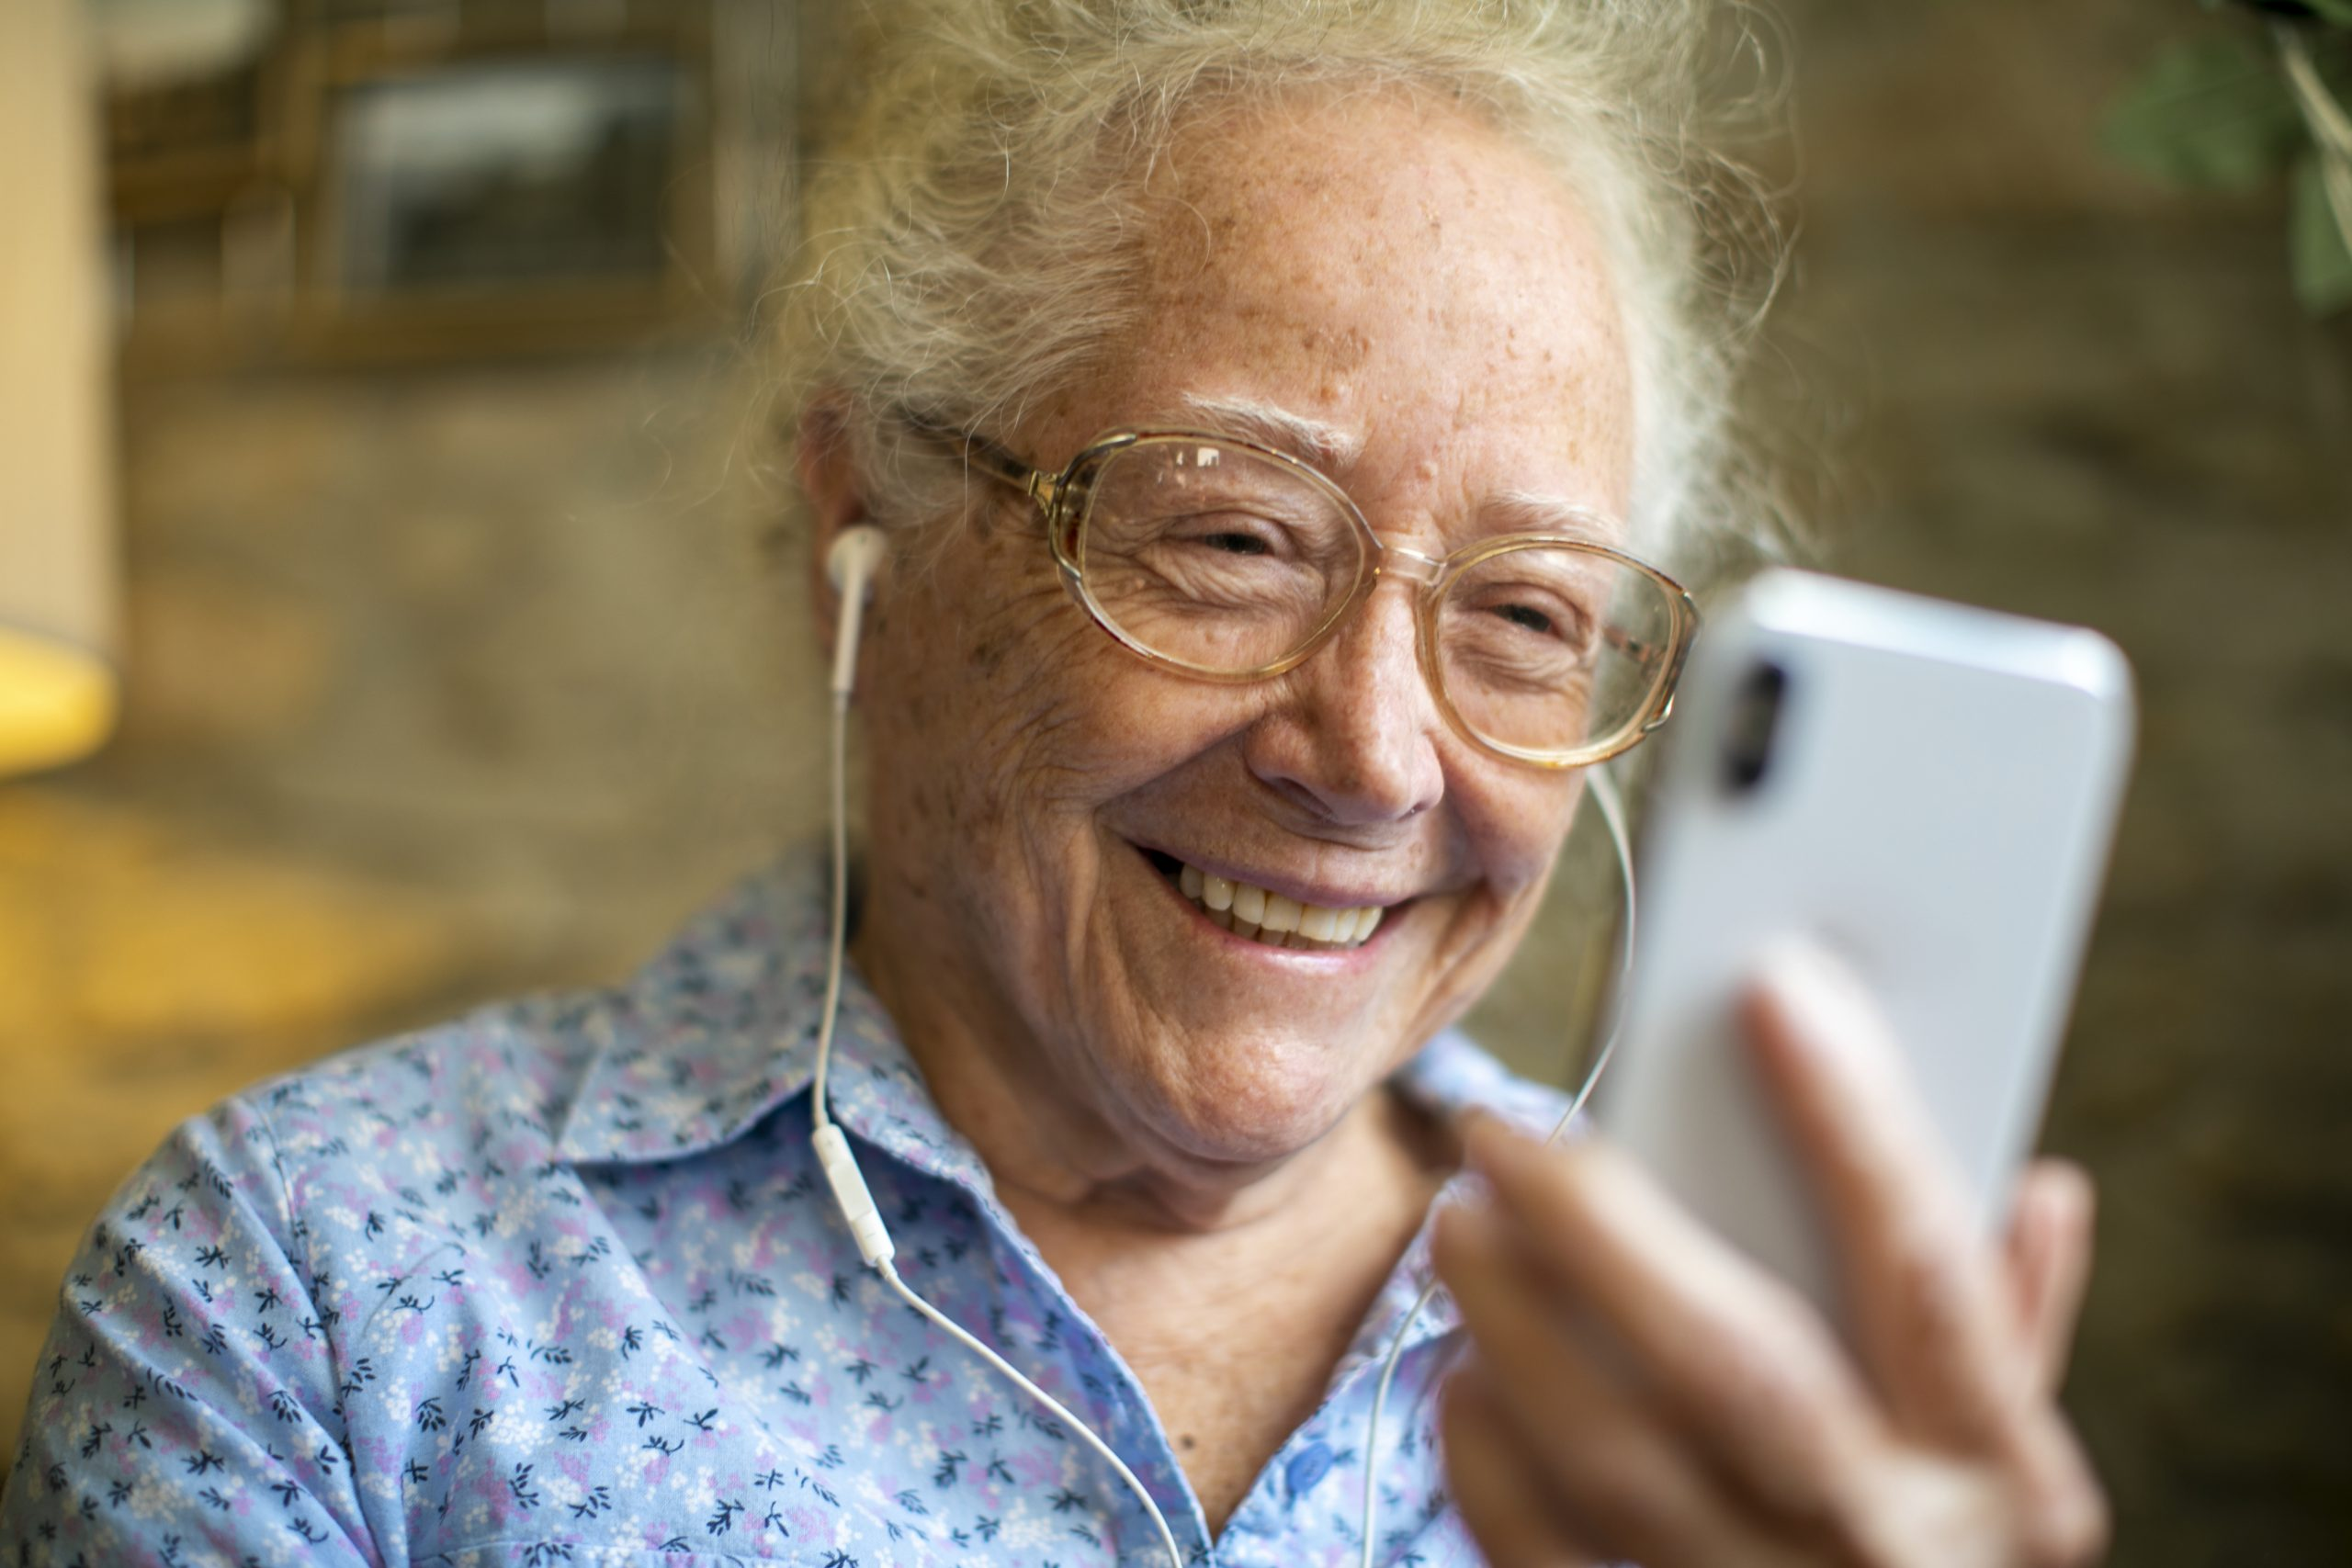 Older woman smiling and looking at smartphone